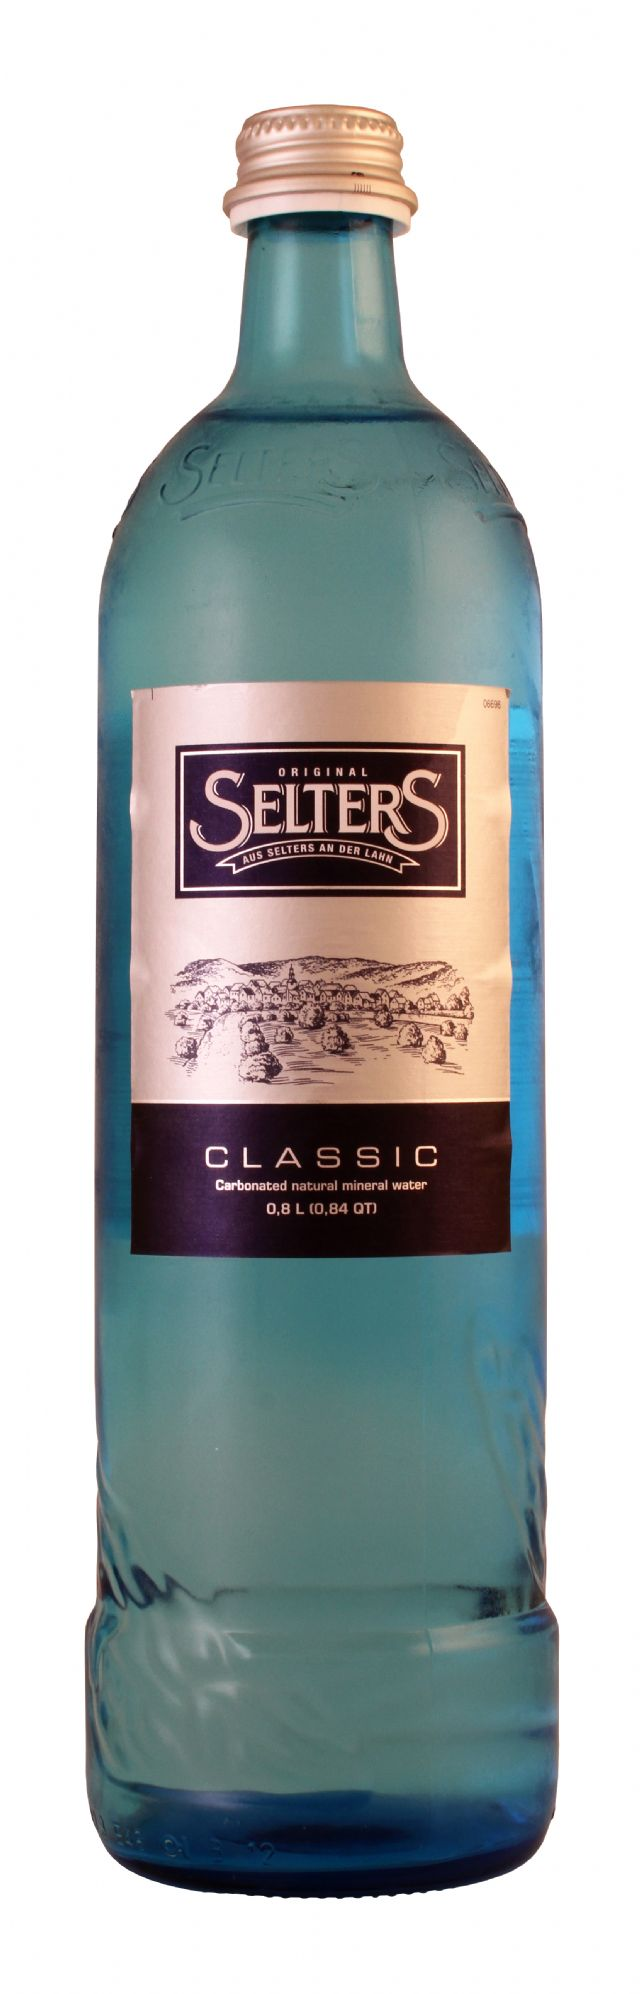 Original Selters Carbonated Natural Mineral Water: Selters Glass